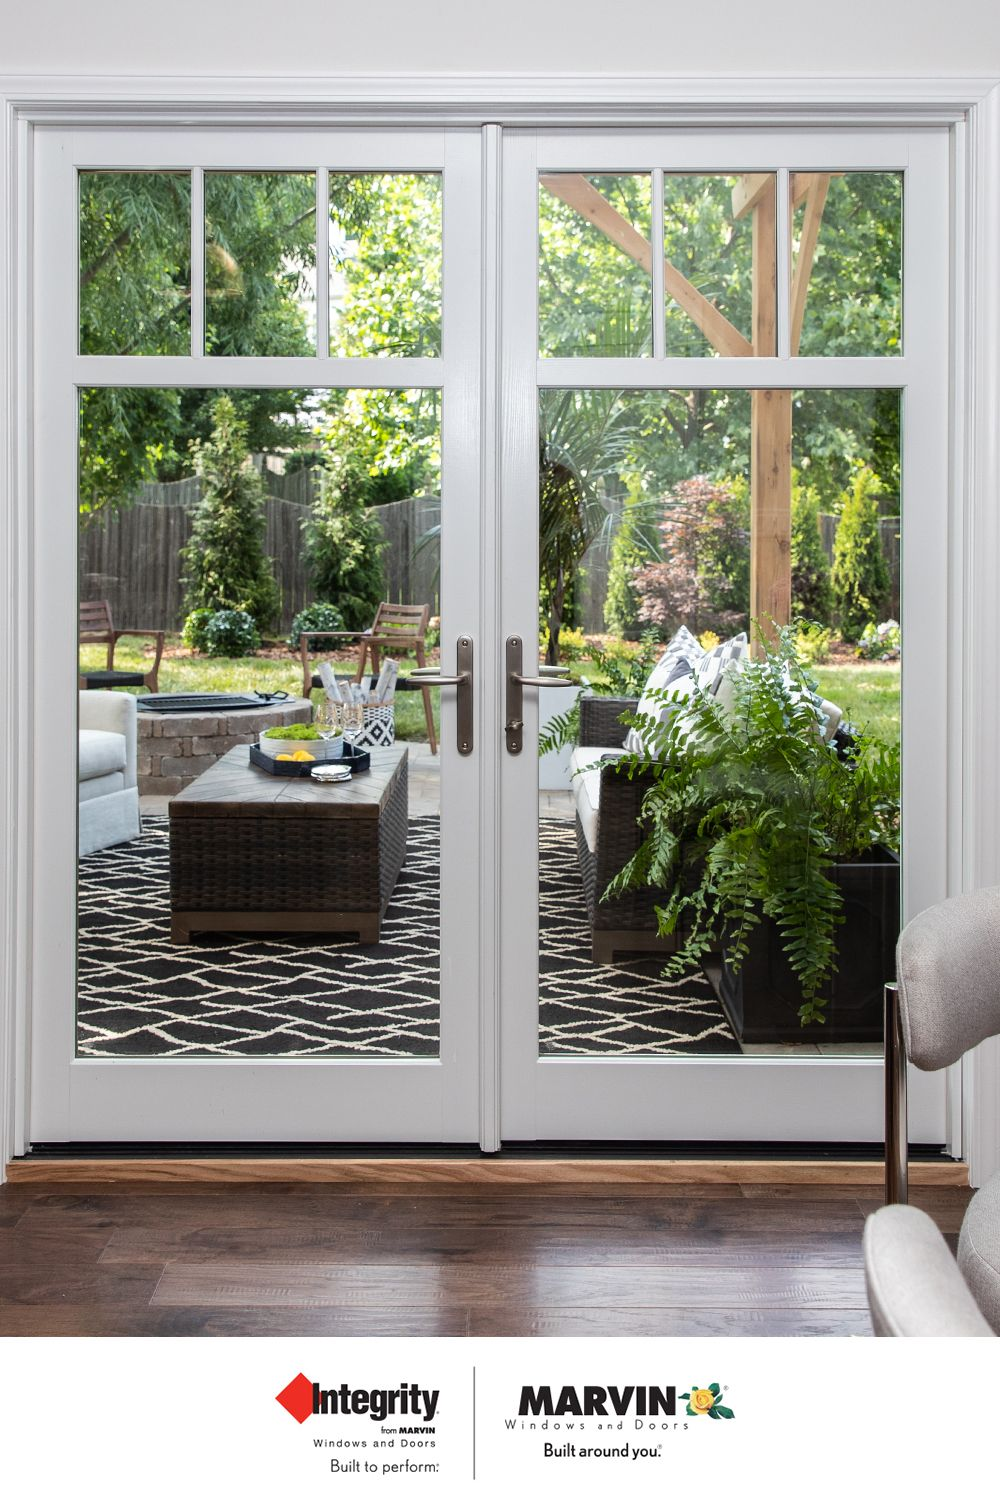 Property Brothers Buying Selling Chose Integrity Wood Ultrex Windows And Doors To Strengthen This R Interior Doors For Sale French Doors Interior Barn Doors